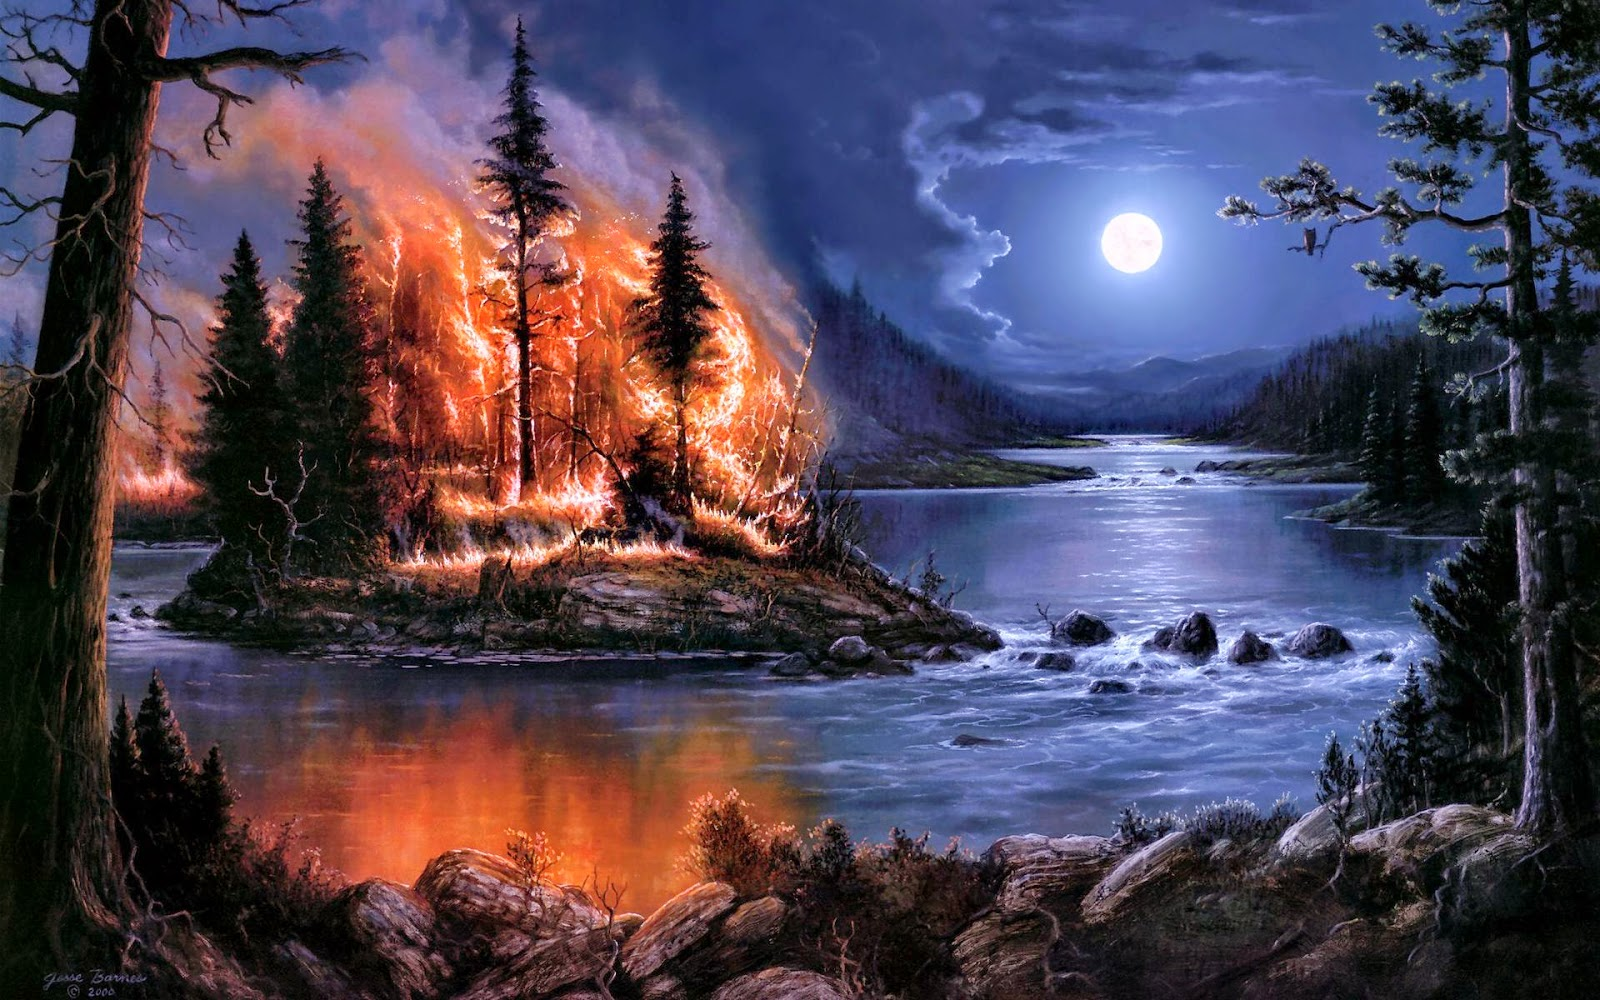 Tree-burns-at-night-near-stream-poetic-wallpaper-painting.jpg